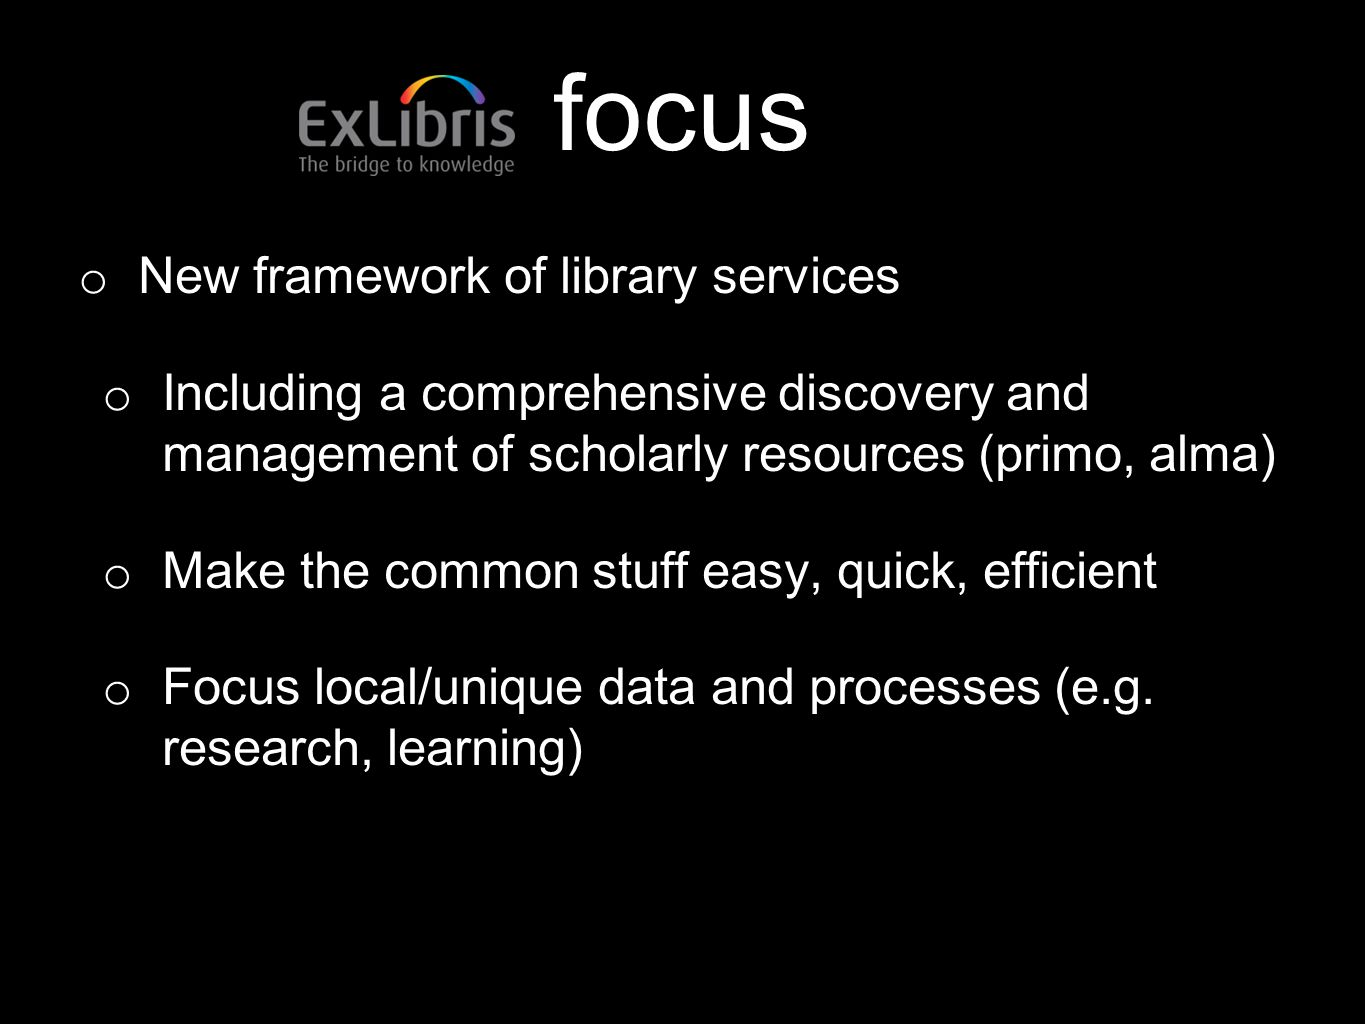 focus o New framework of library services o Including a comprehensive discovery and management of scholarly resources (primo, alma) o Make the common stuff easy, quick, efficient o Focus local/unique data and processes (e.g.